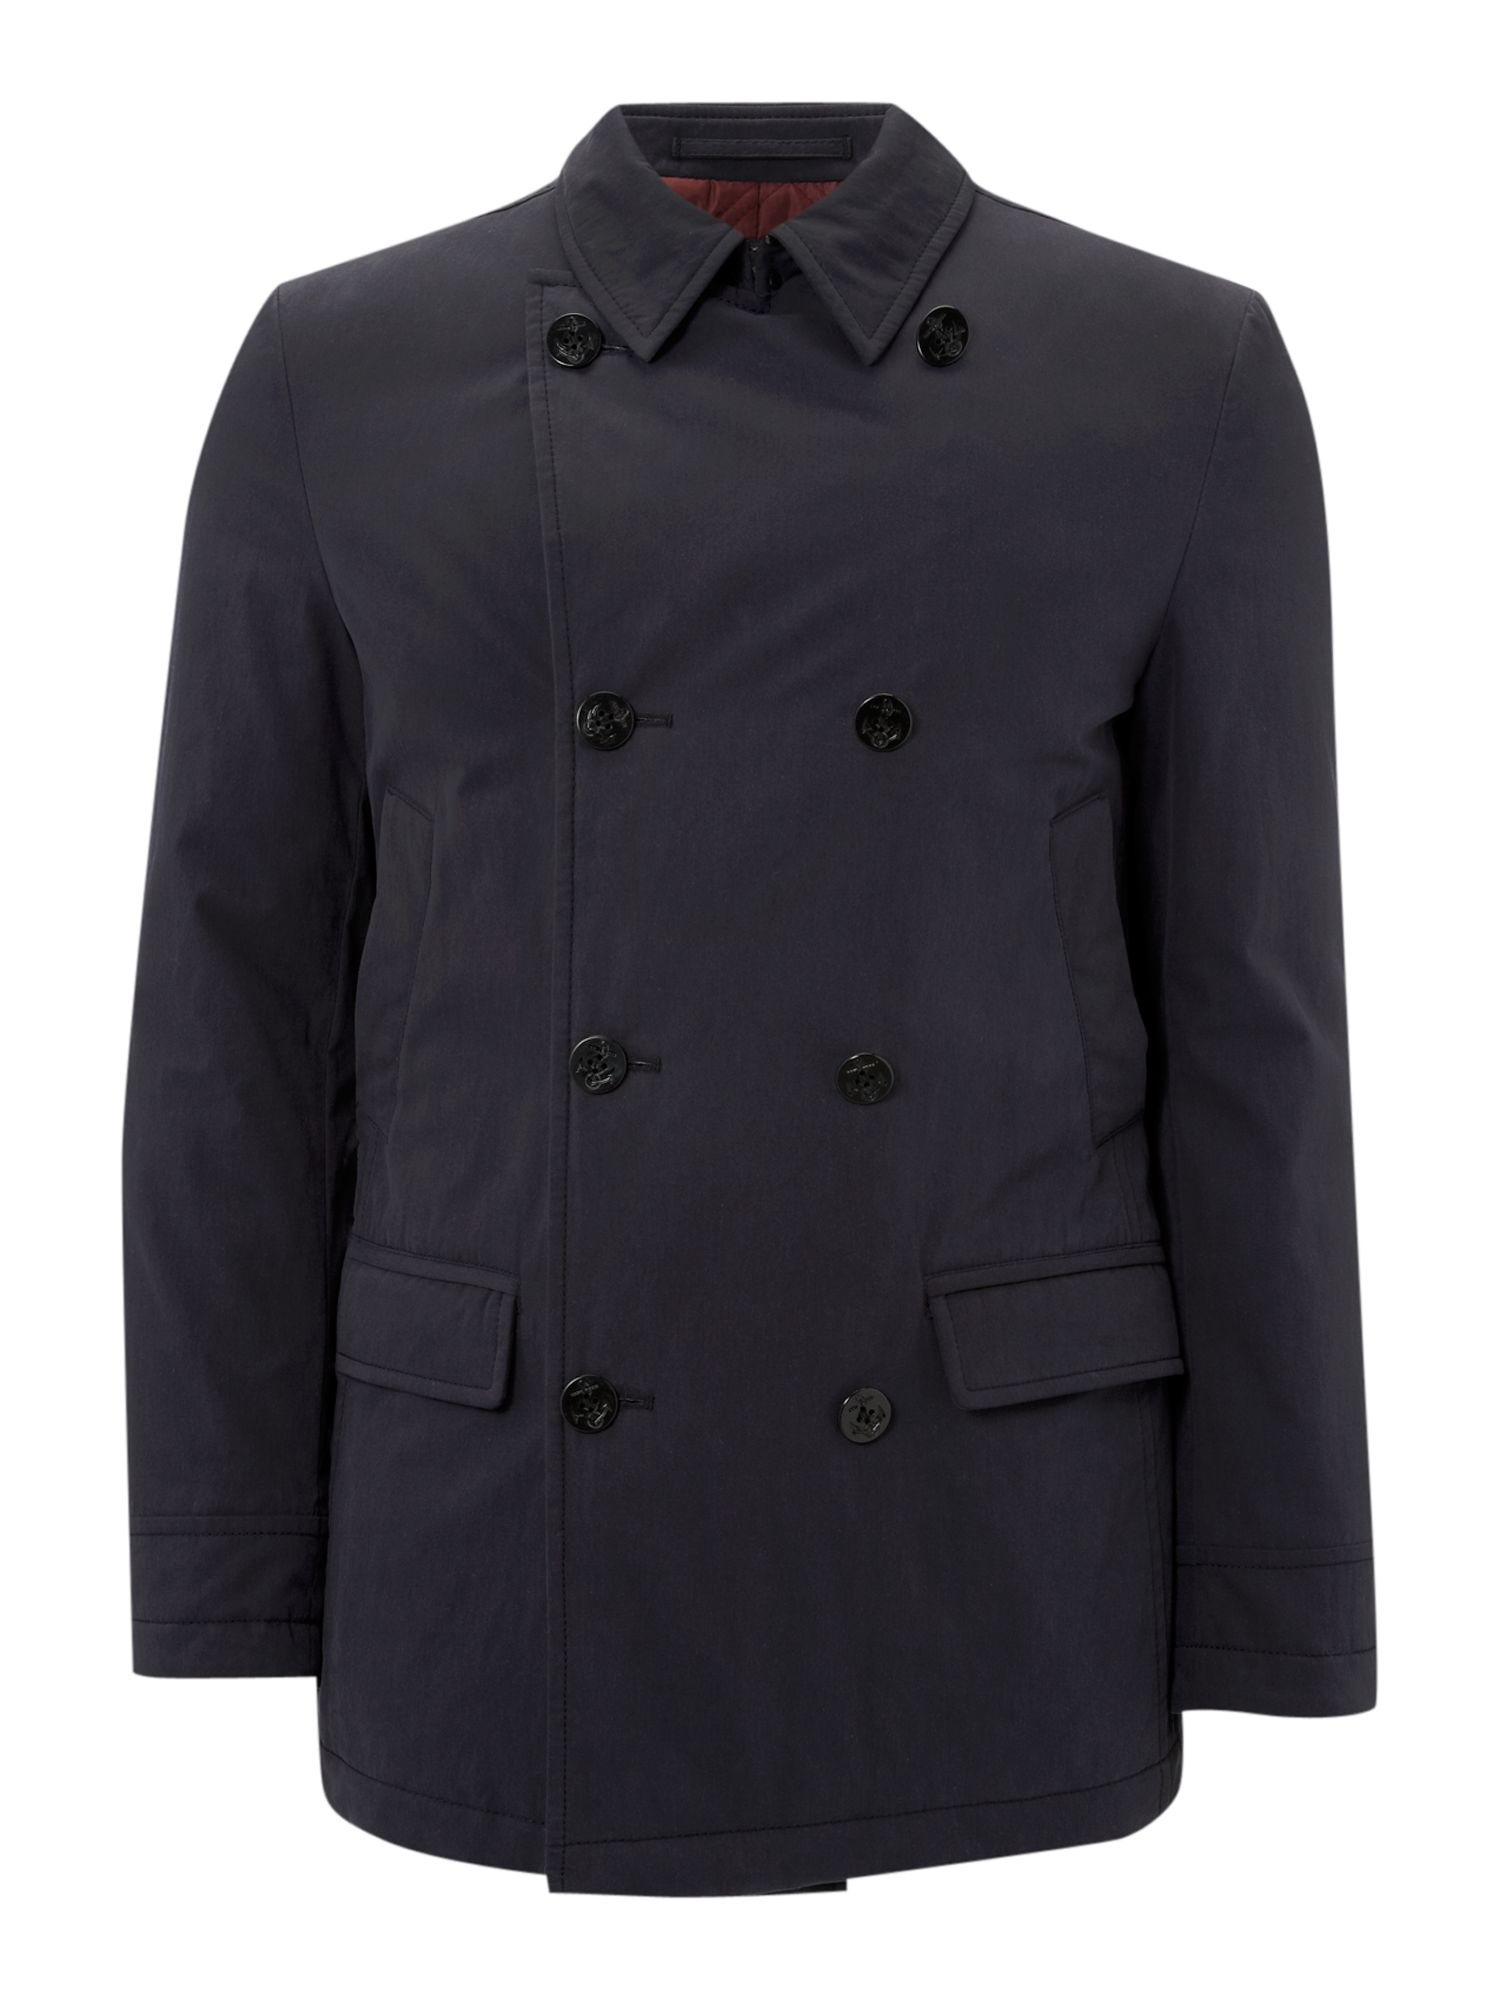 New york pea coat